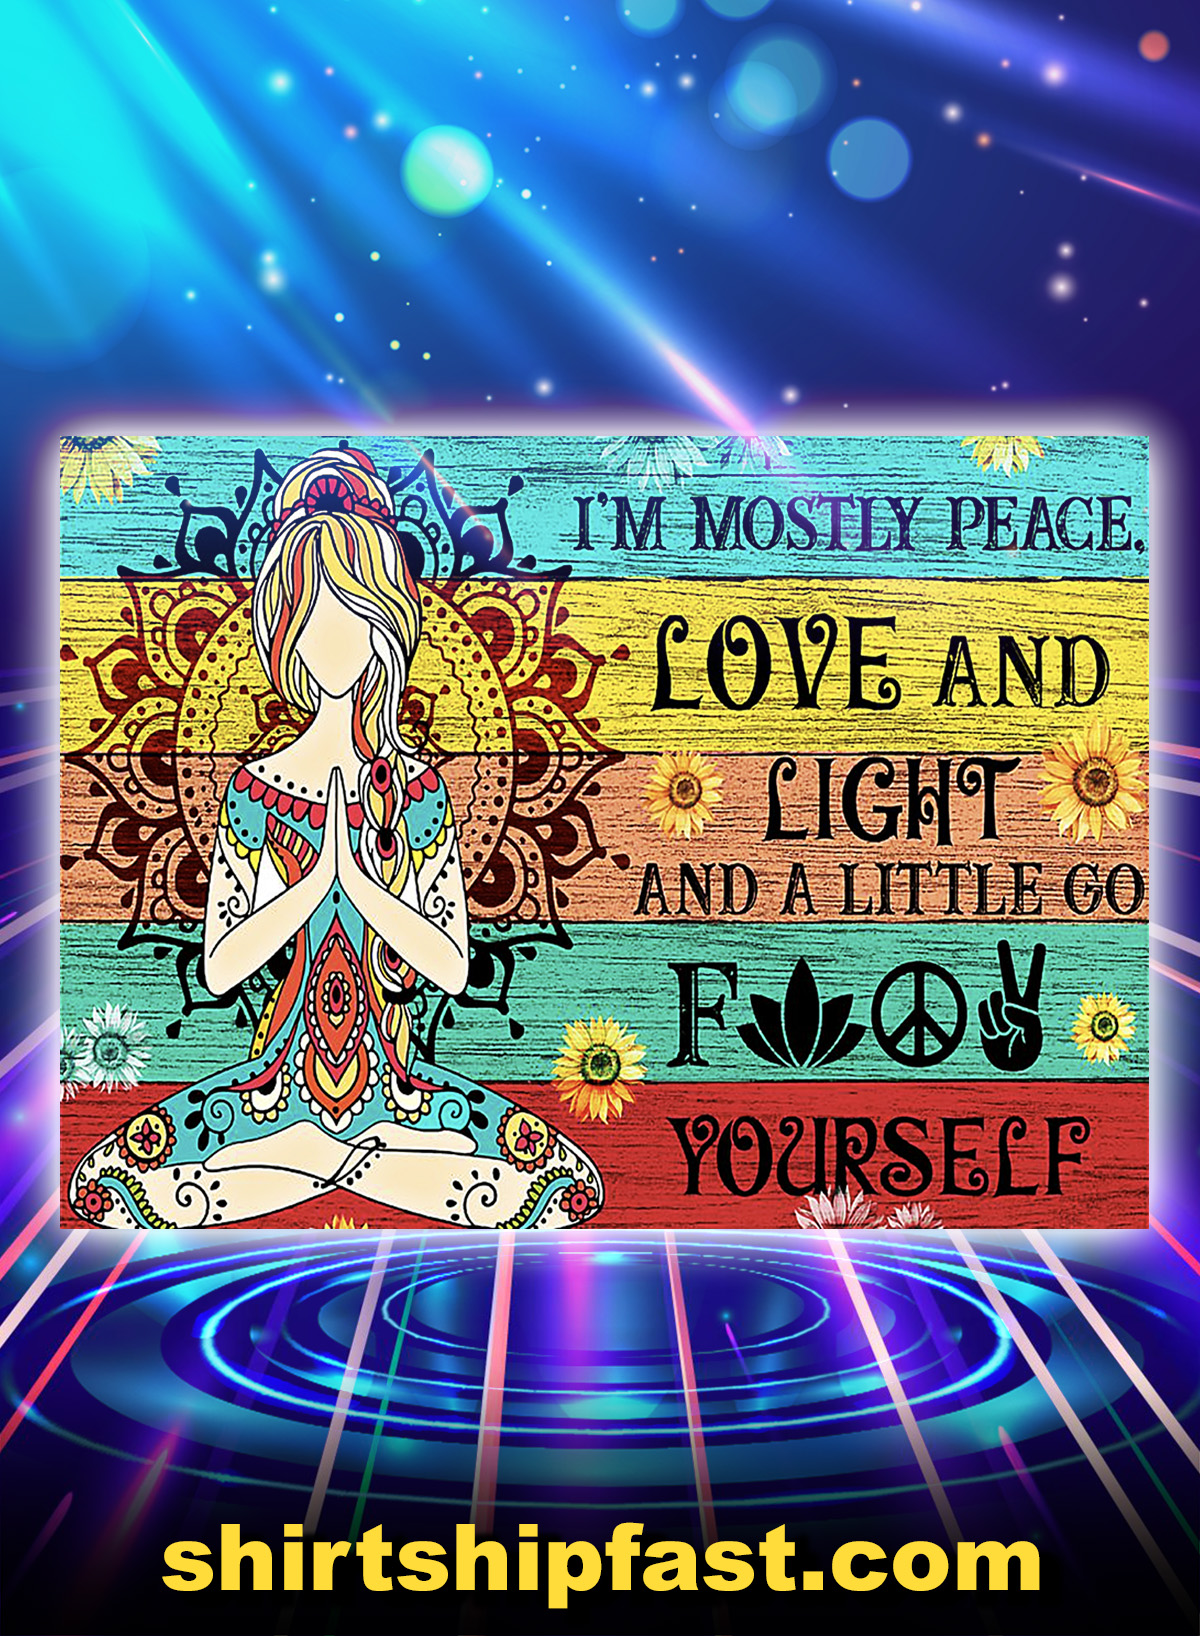 Yoga meditation I'm mostly peace love and light poster - A4